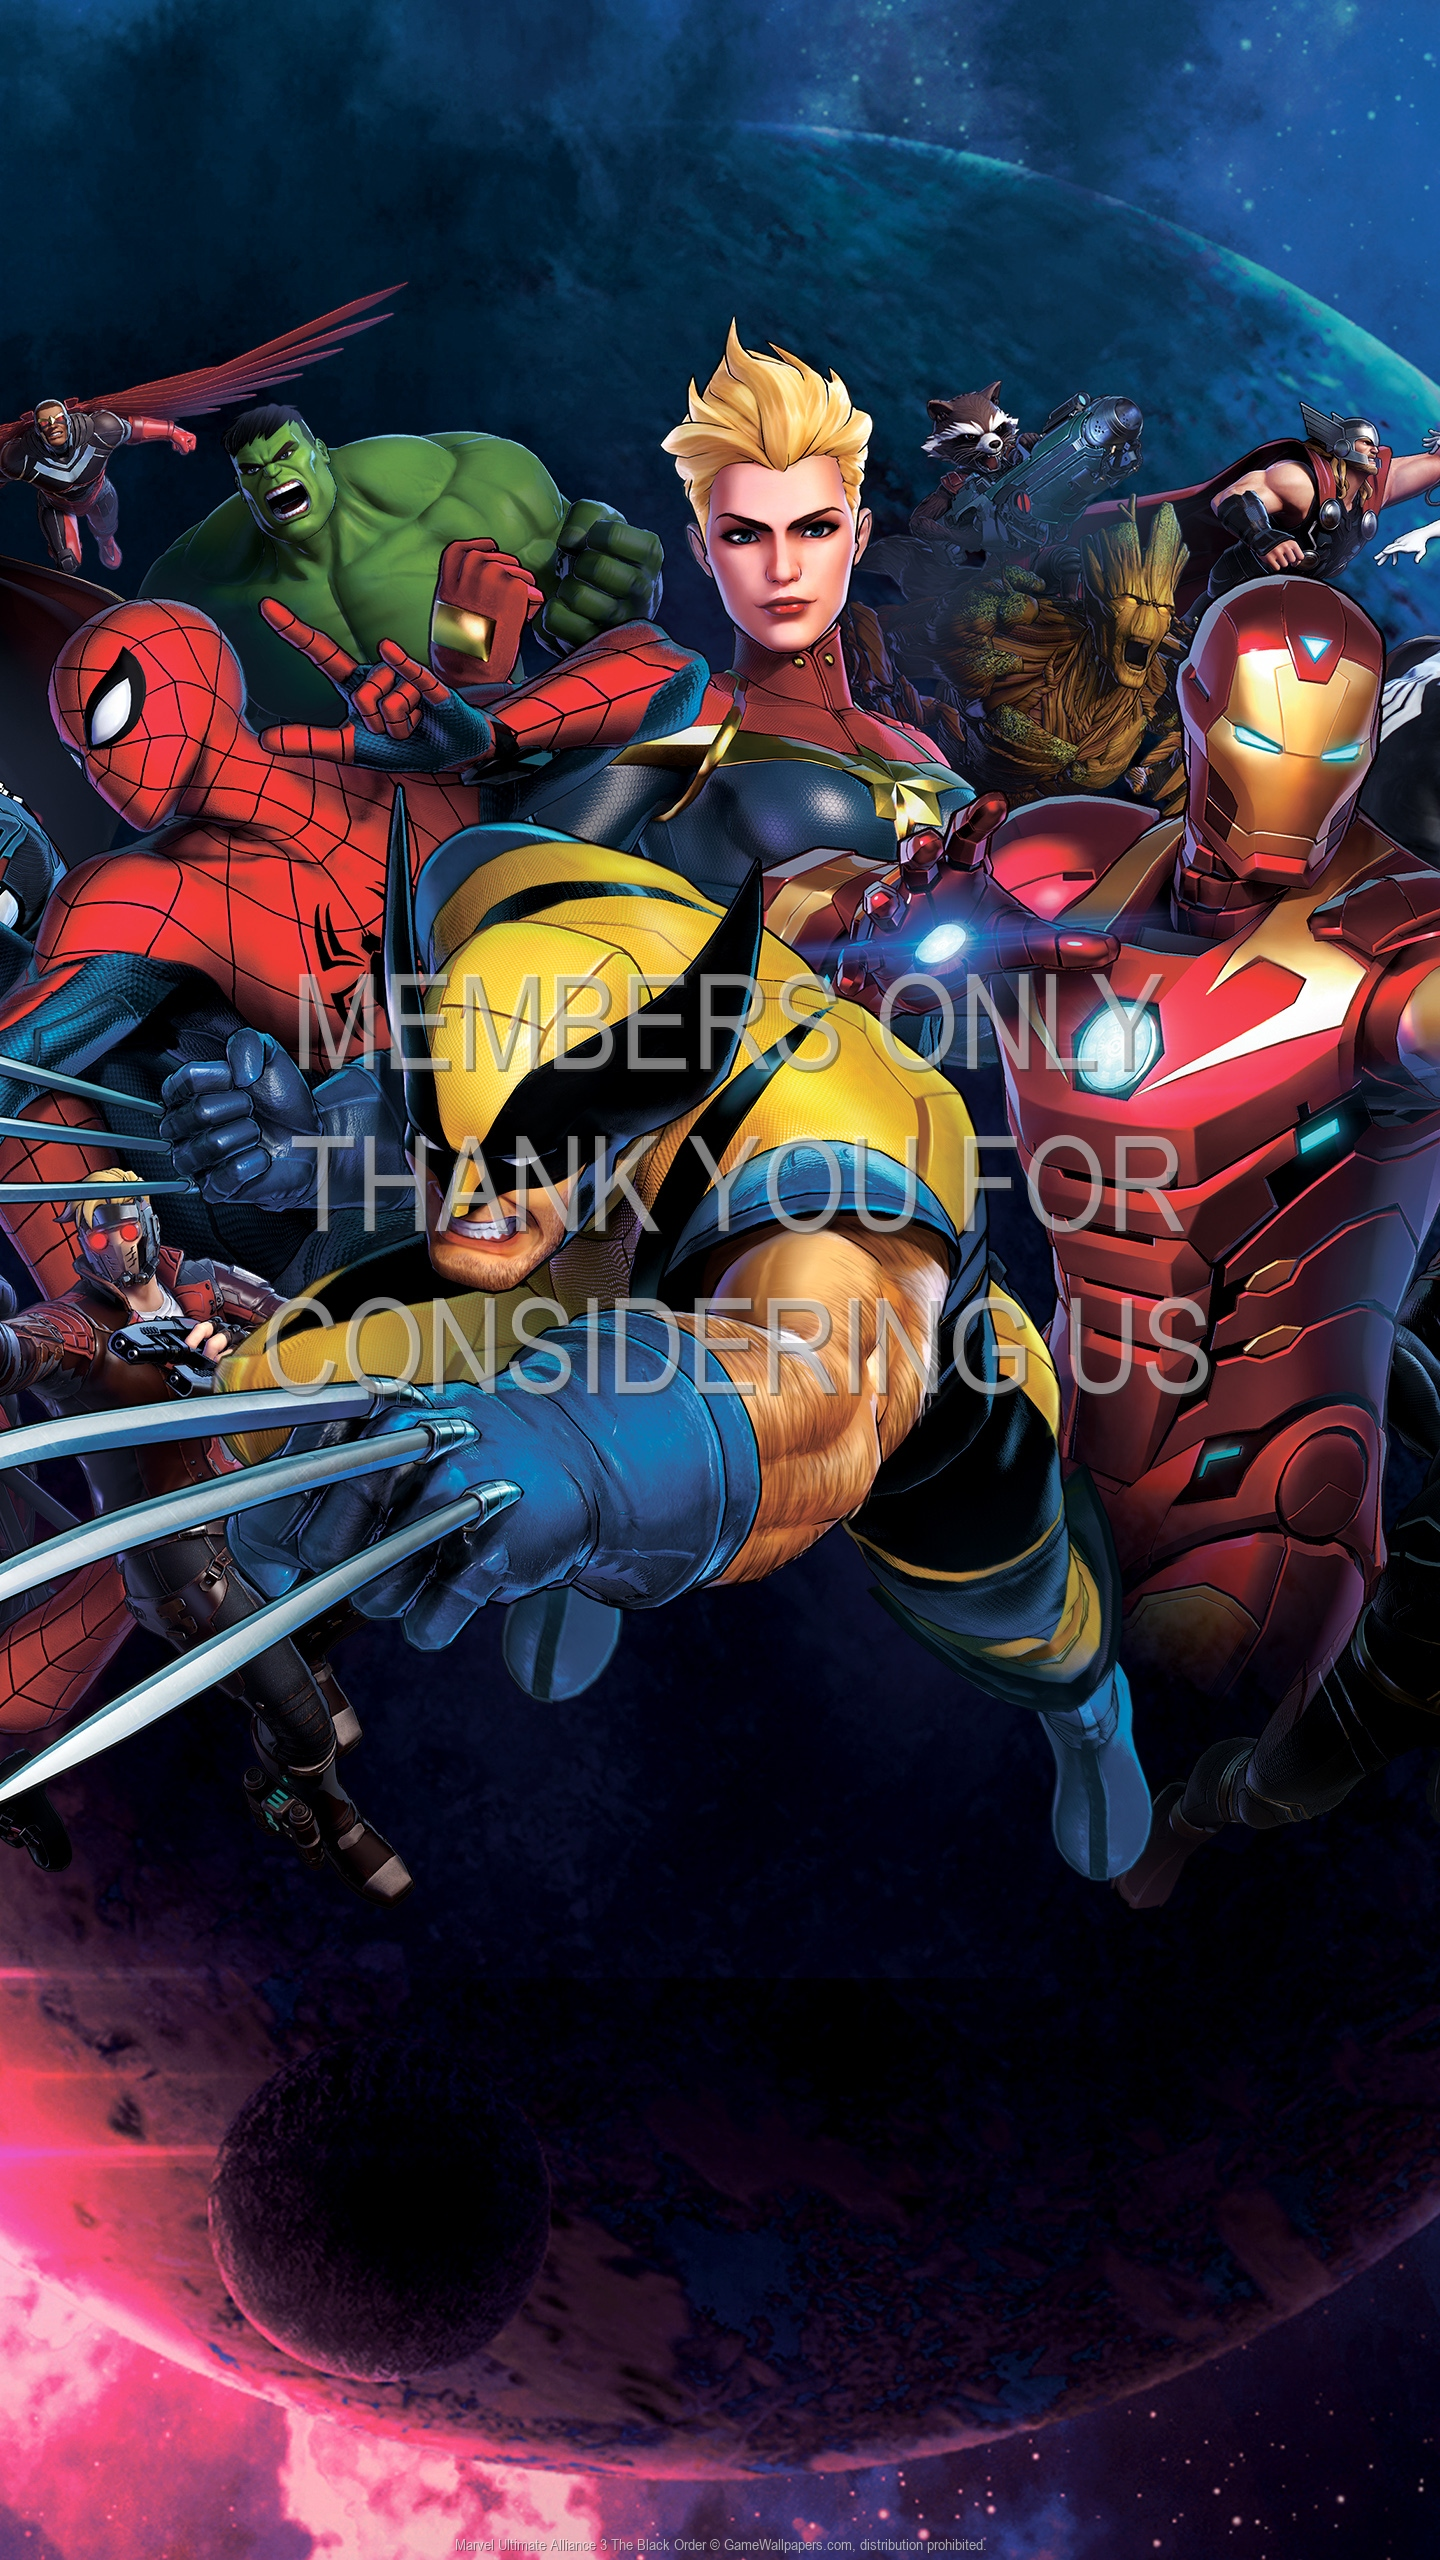 Marvel Ultimate Alliance 3: The Black Order 1920x1080 Mobiele achtergrond 01